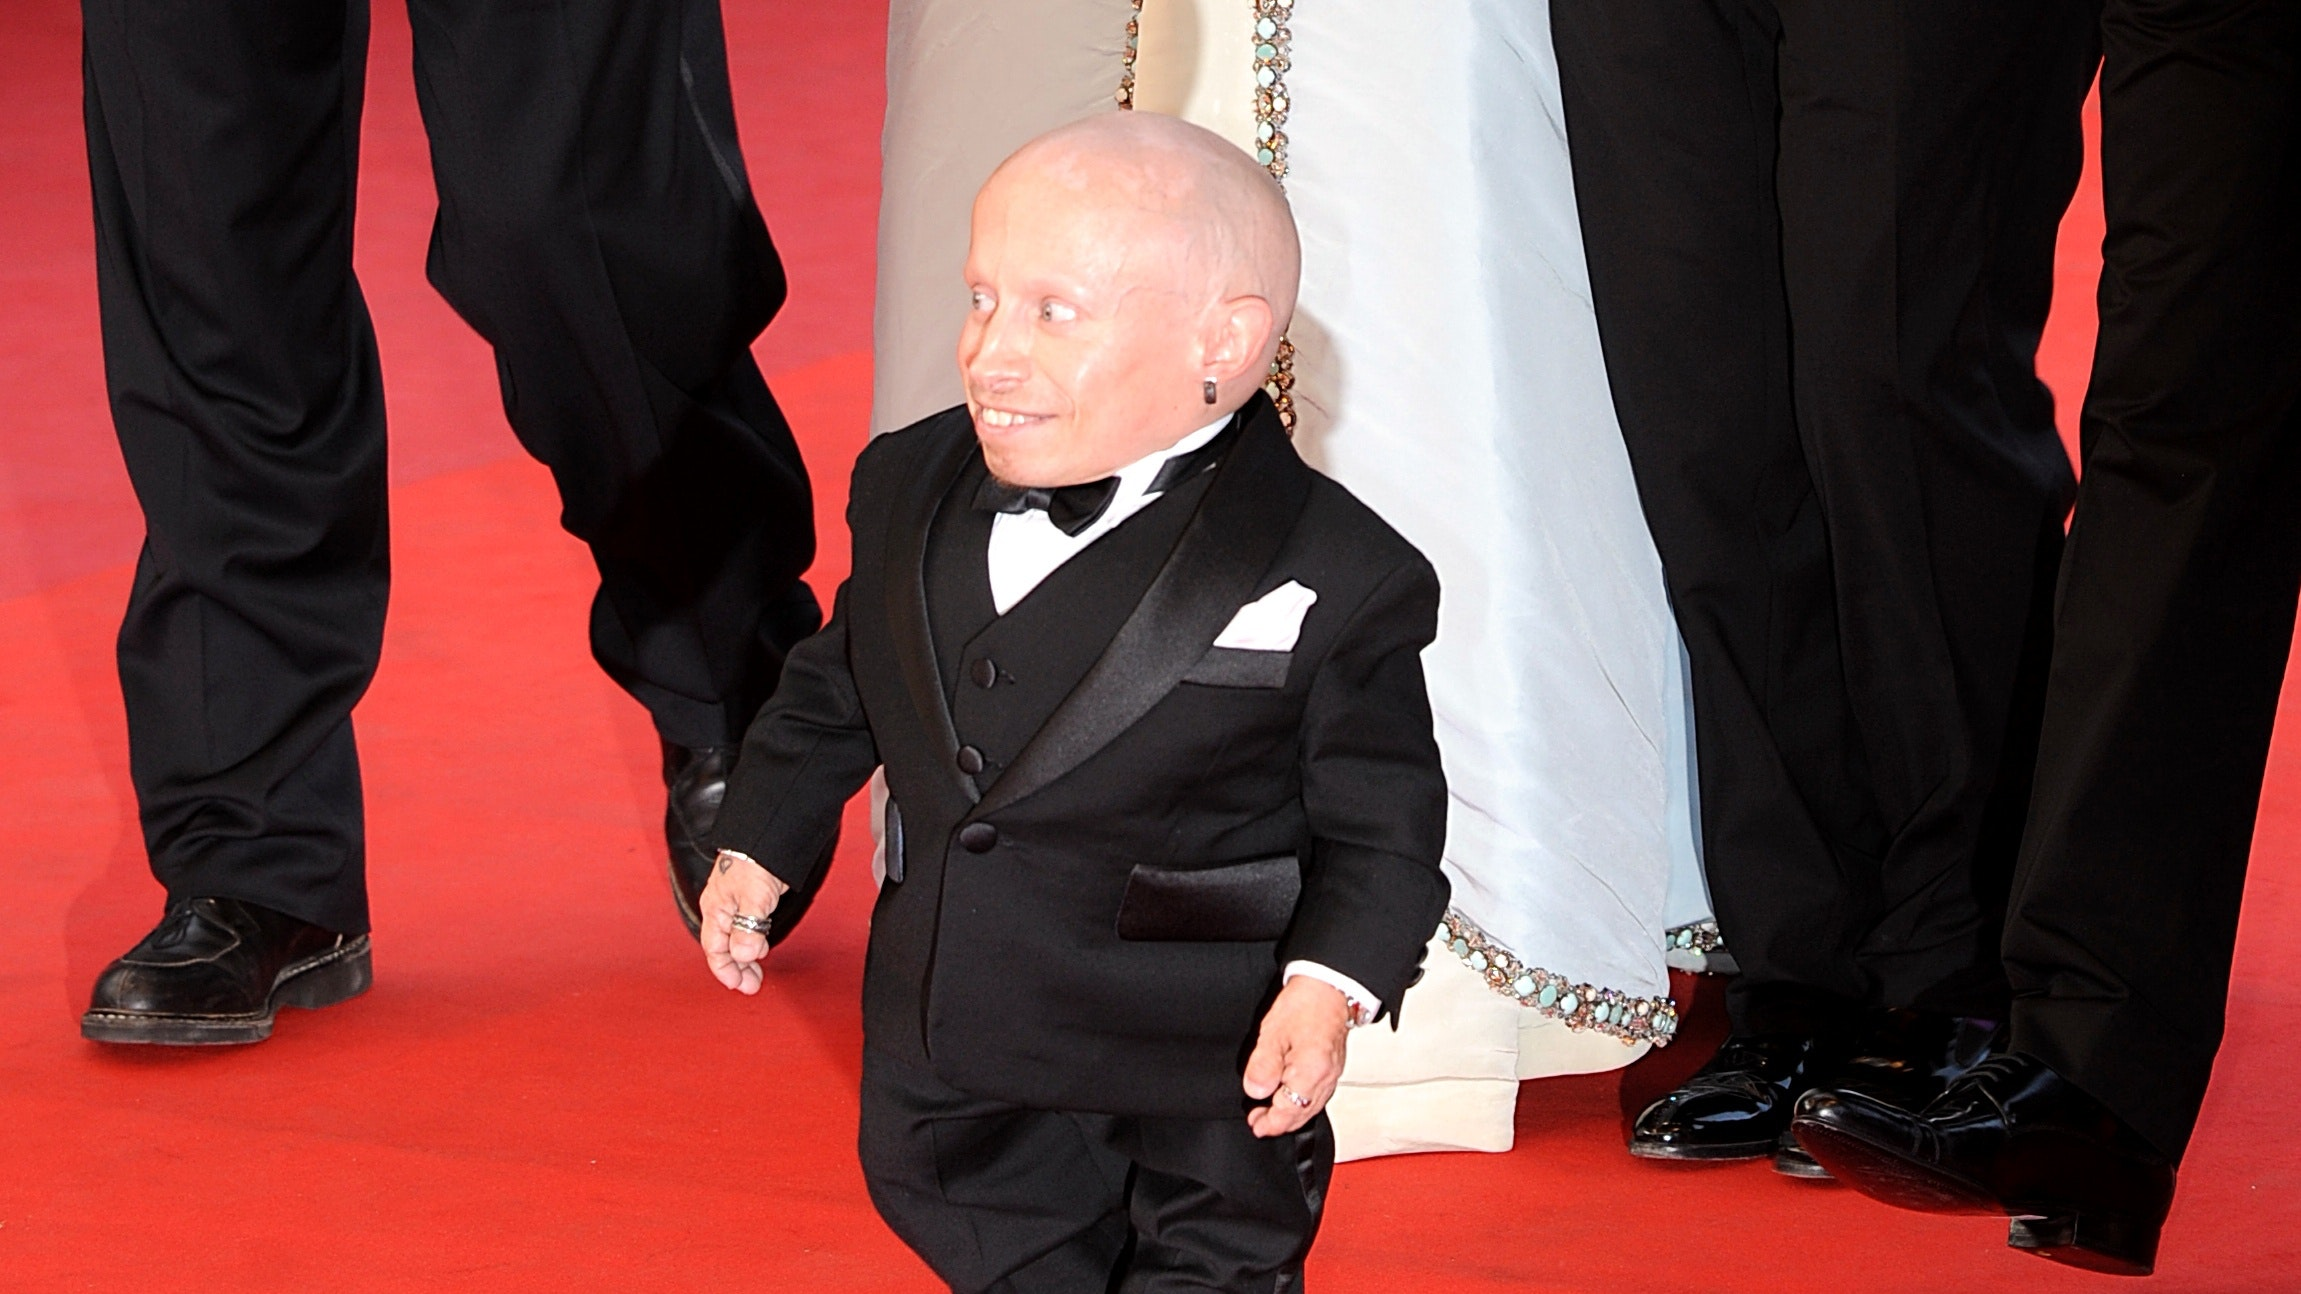 Austin powers star verne troyer dies aged 49 bt austin powers star verne troyer has died aged 49 his official social media accounts have confirmed bookmarktalkfo Image collections